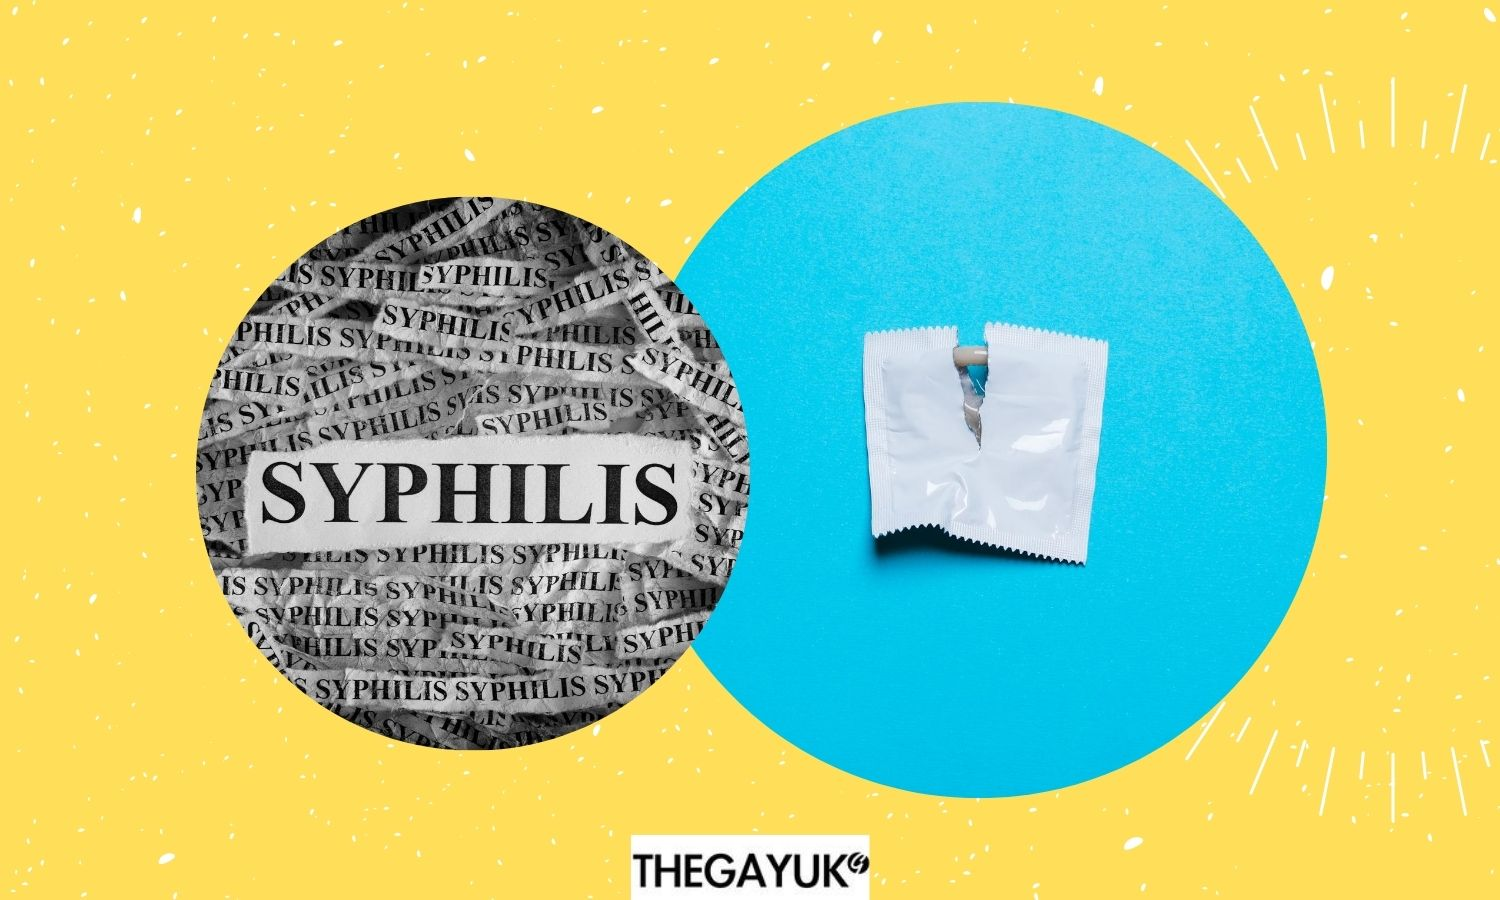 Everything you need to know about Syphilis